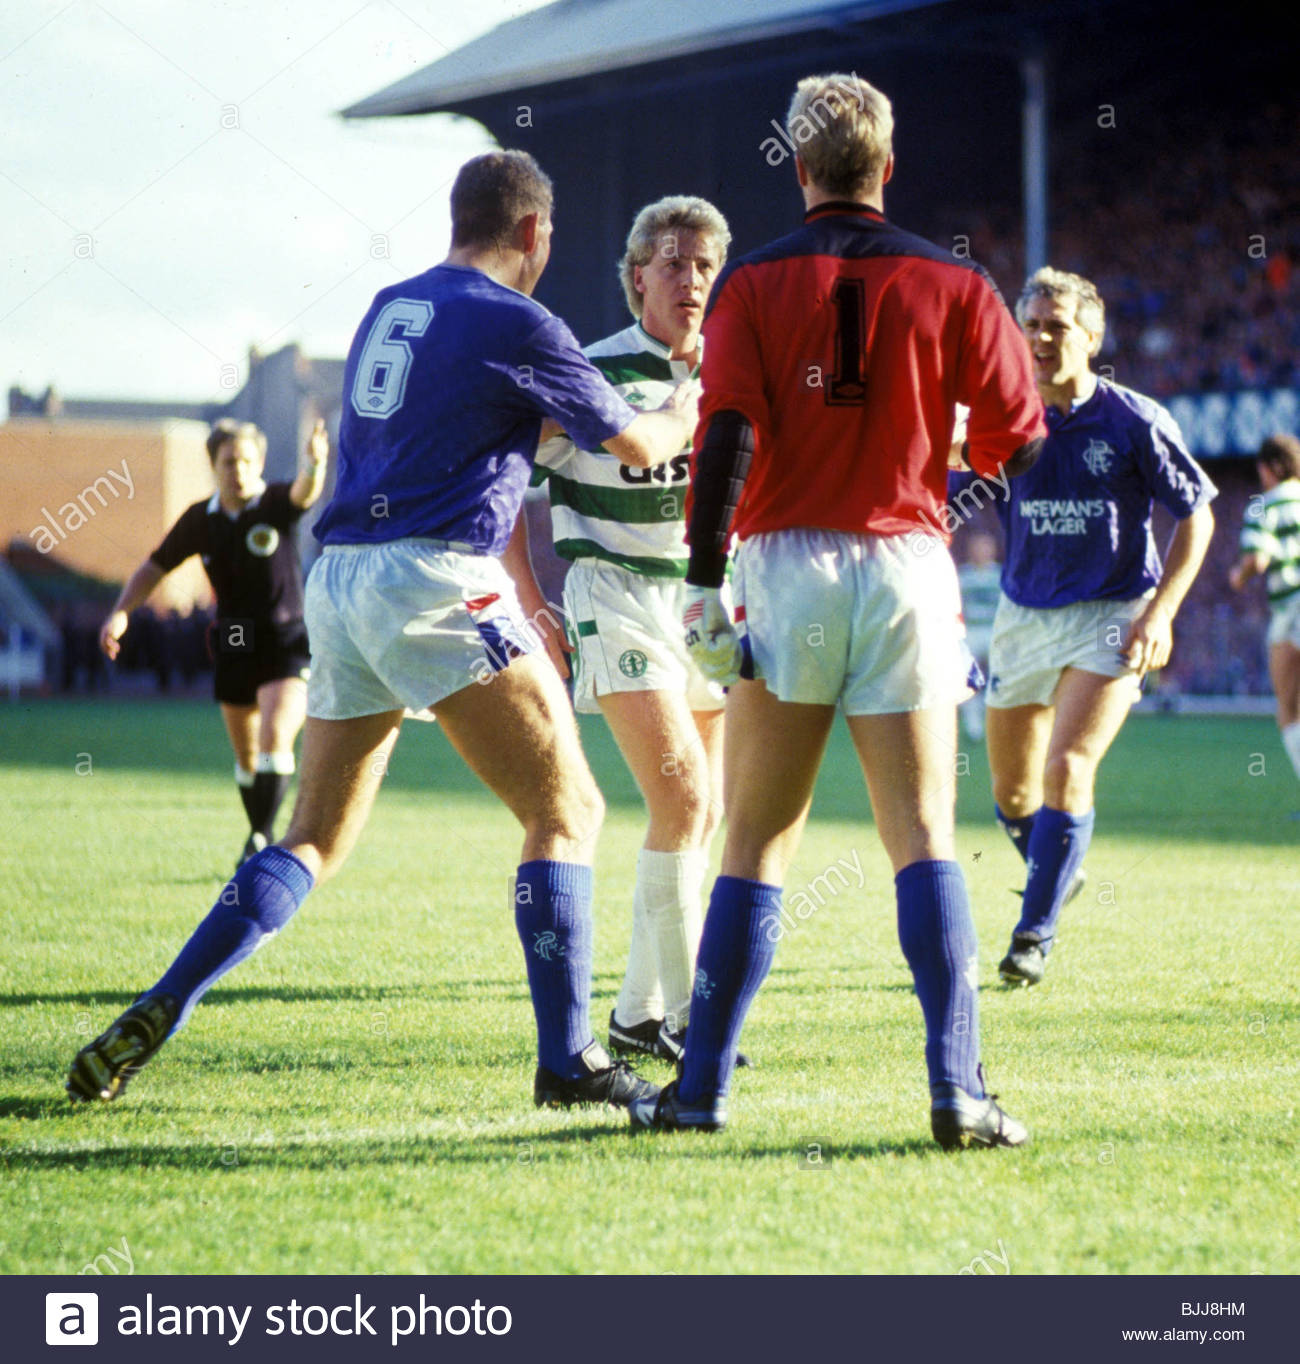 17/10/87 PREMIER DIVISION RANGERS V CELTIC IBROX - GLASGOW Rangers captain Terry Butcher (6) steps into to defuse - Stock Image